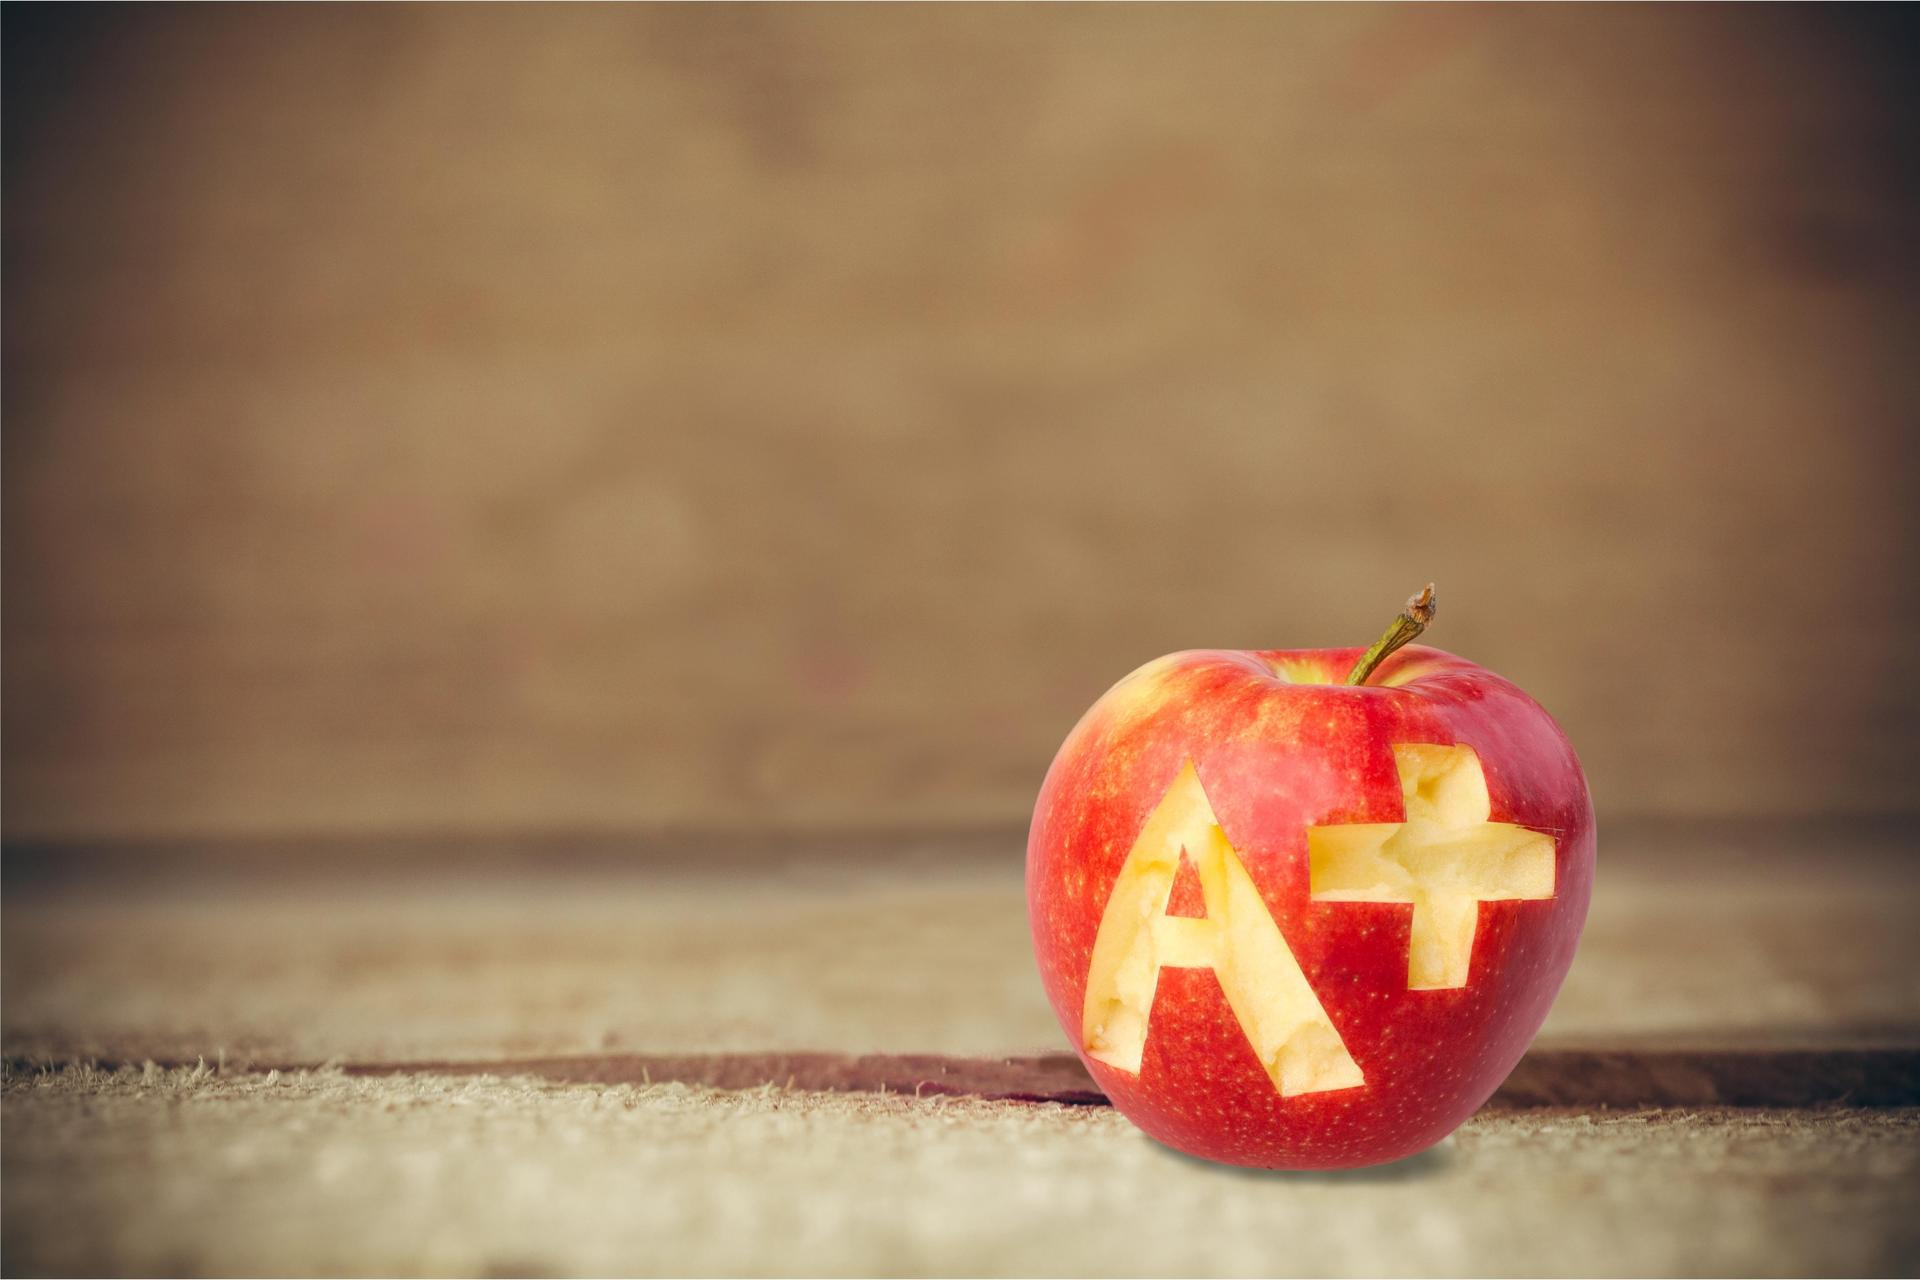 Apple with grade letter A plus